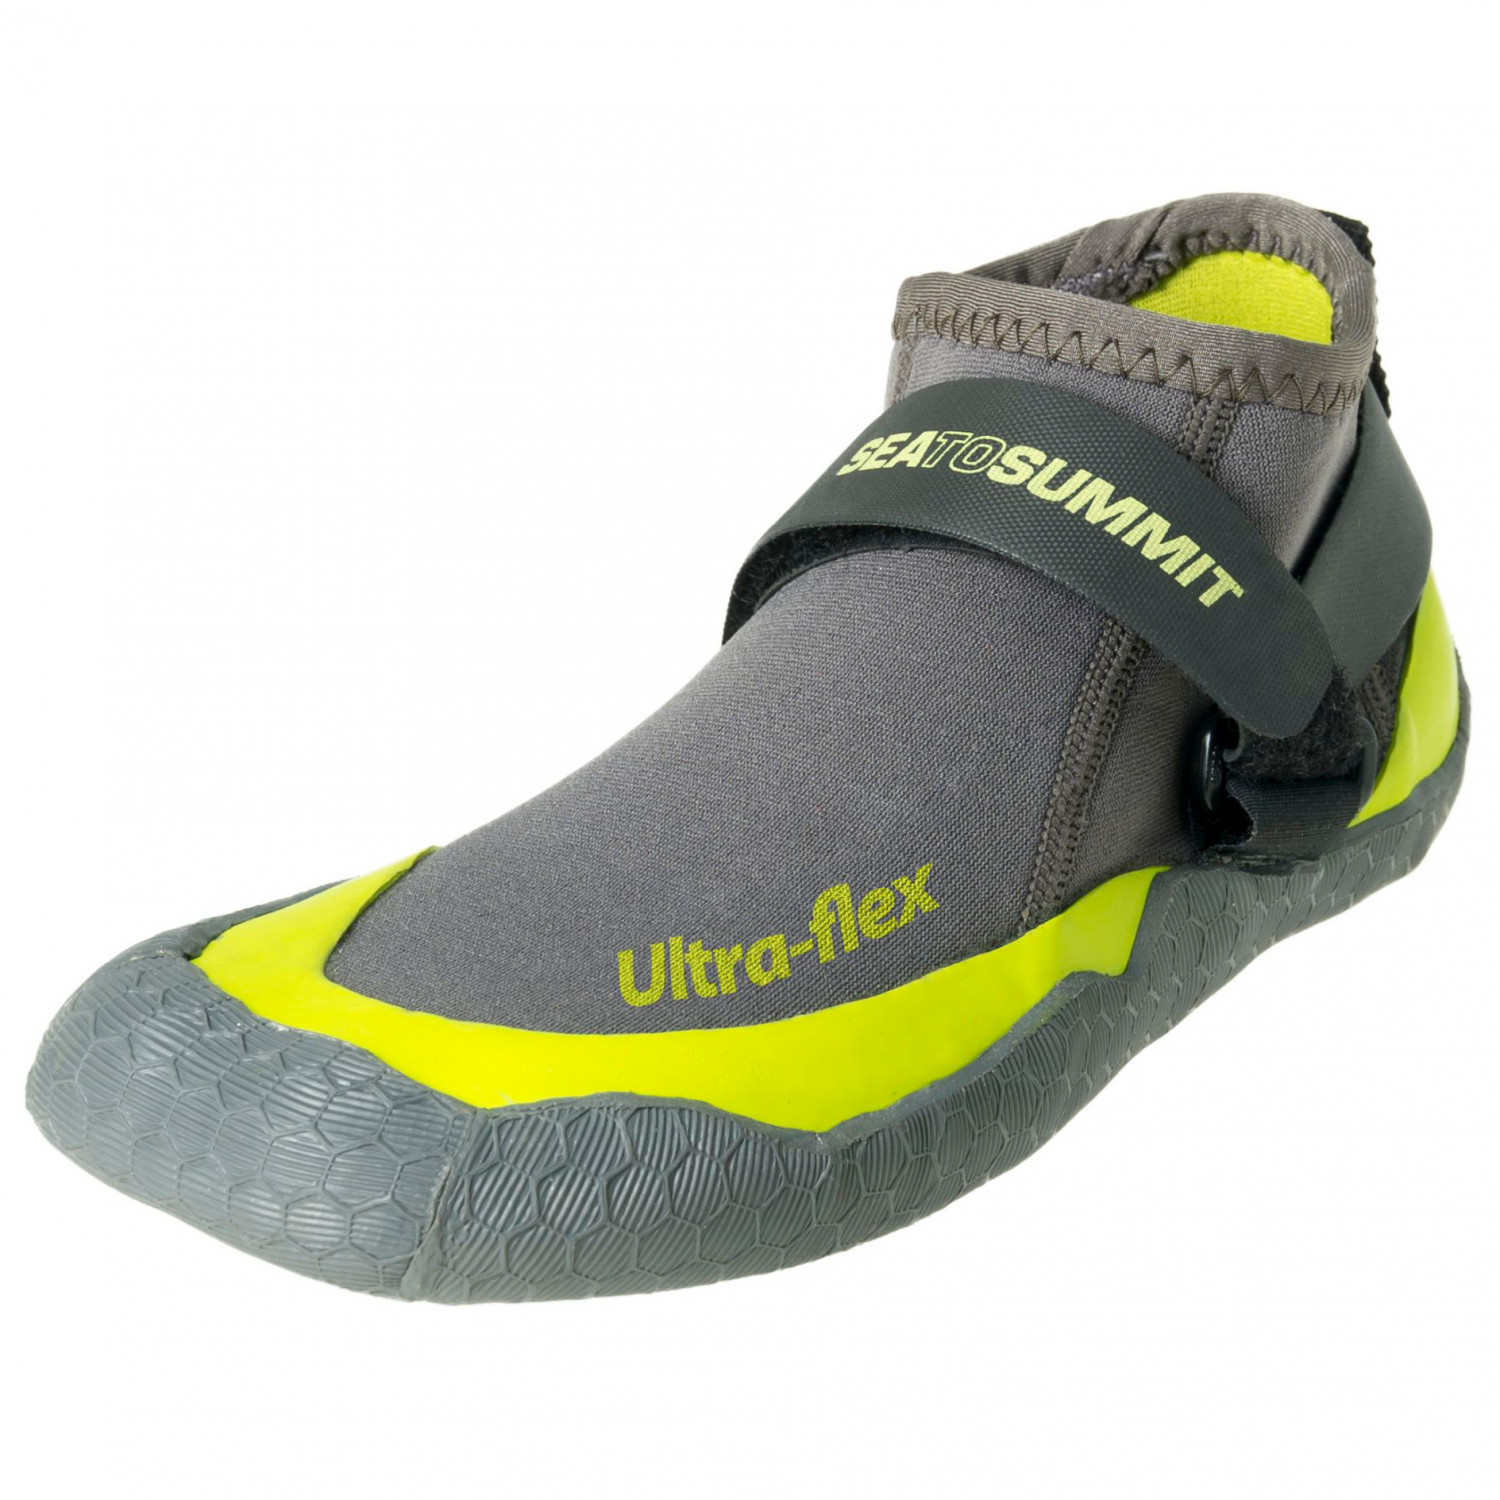 8af75659378 Sea to Summit Ultra Flex Booties - Water Shoes | Buy online ...